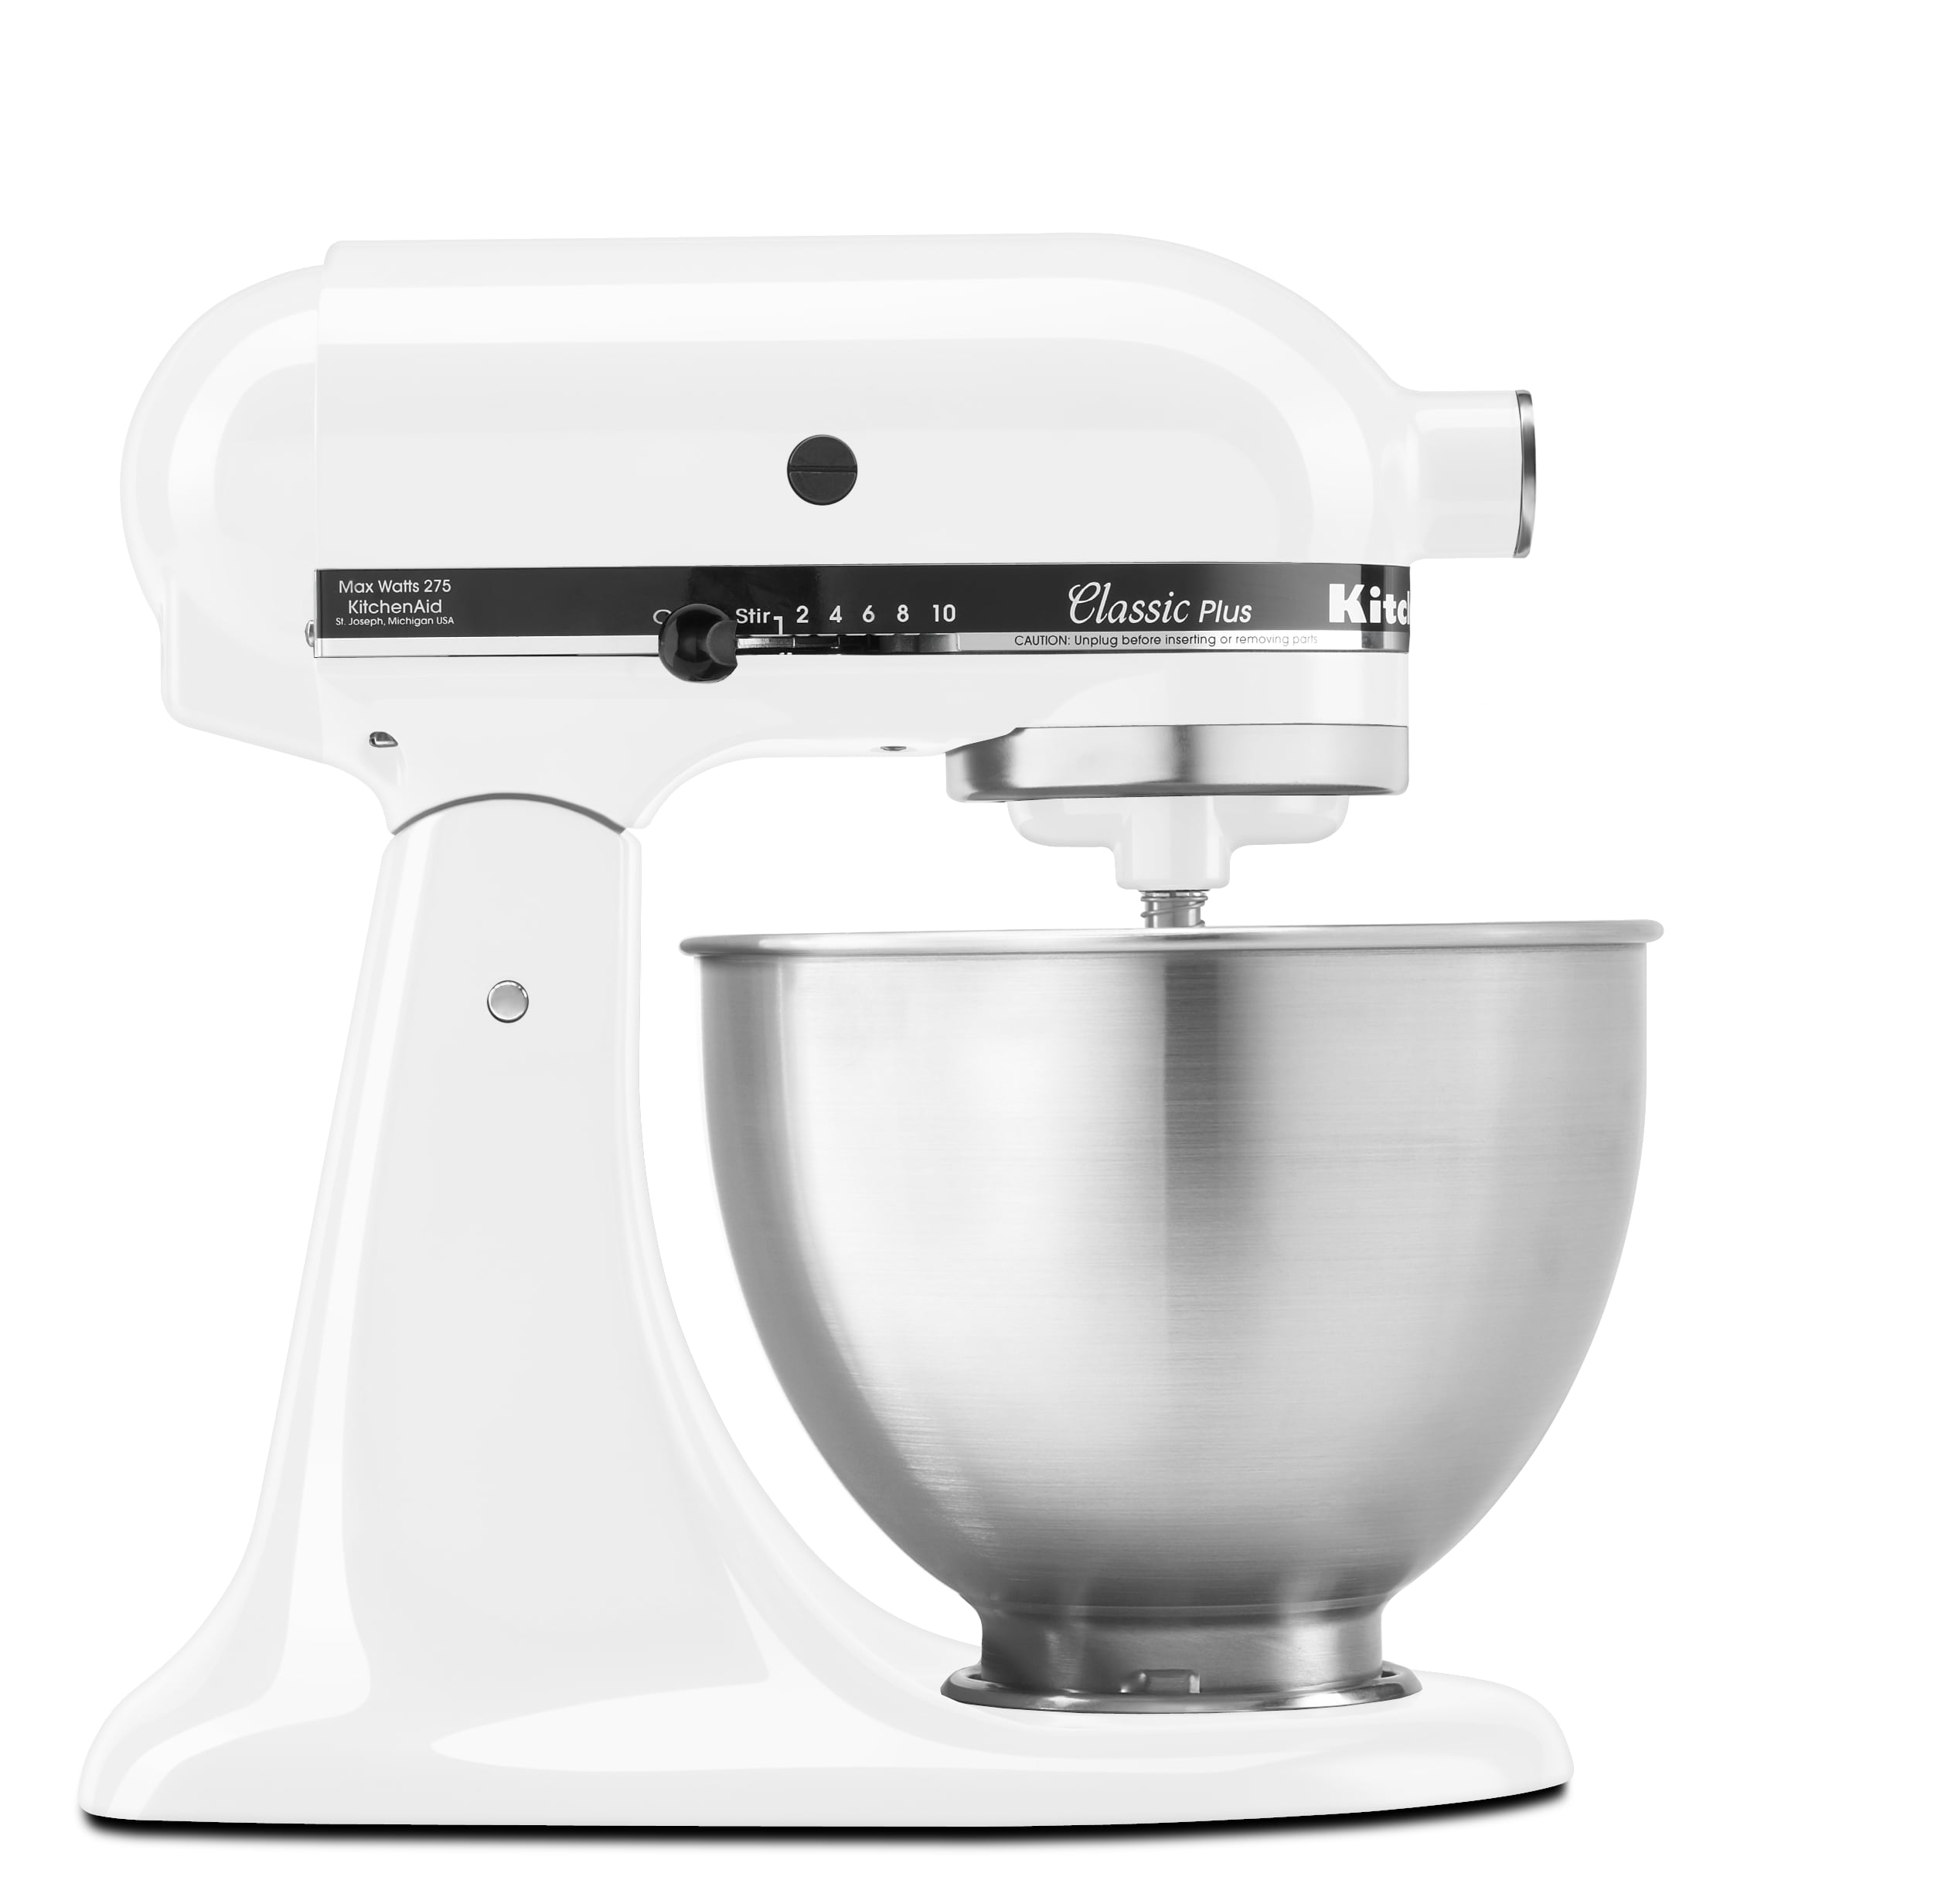 KitchenAid-Classic-Plus-Series-4-5-Quart-Tilt-Head-Stand-Mixer-KSM75 thumbnail 17